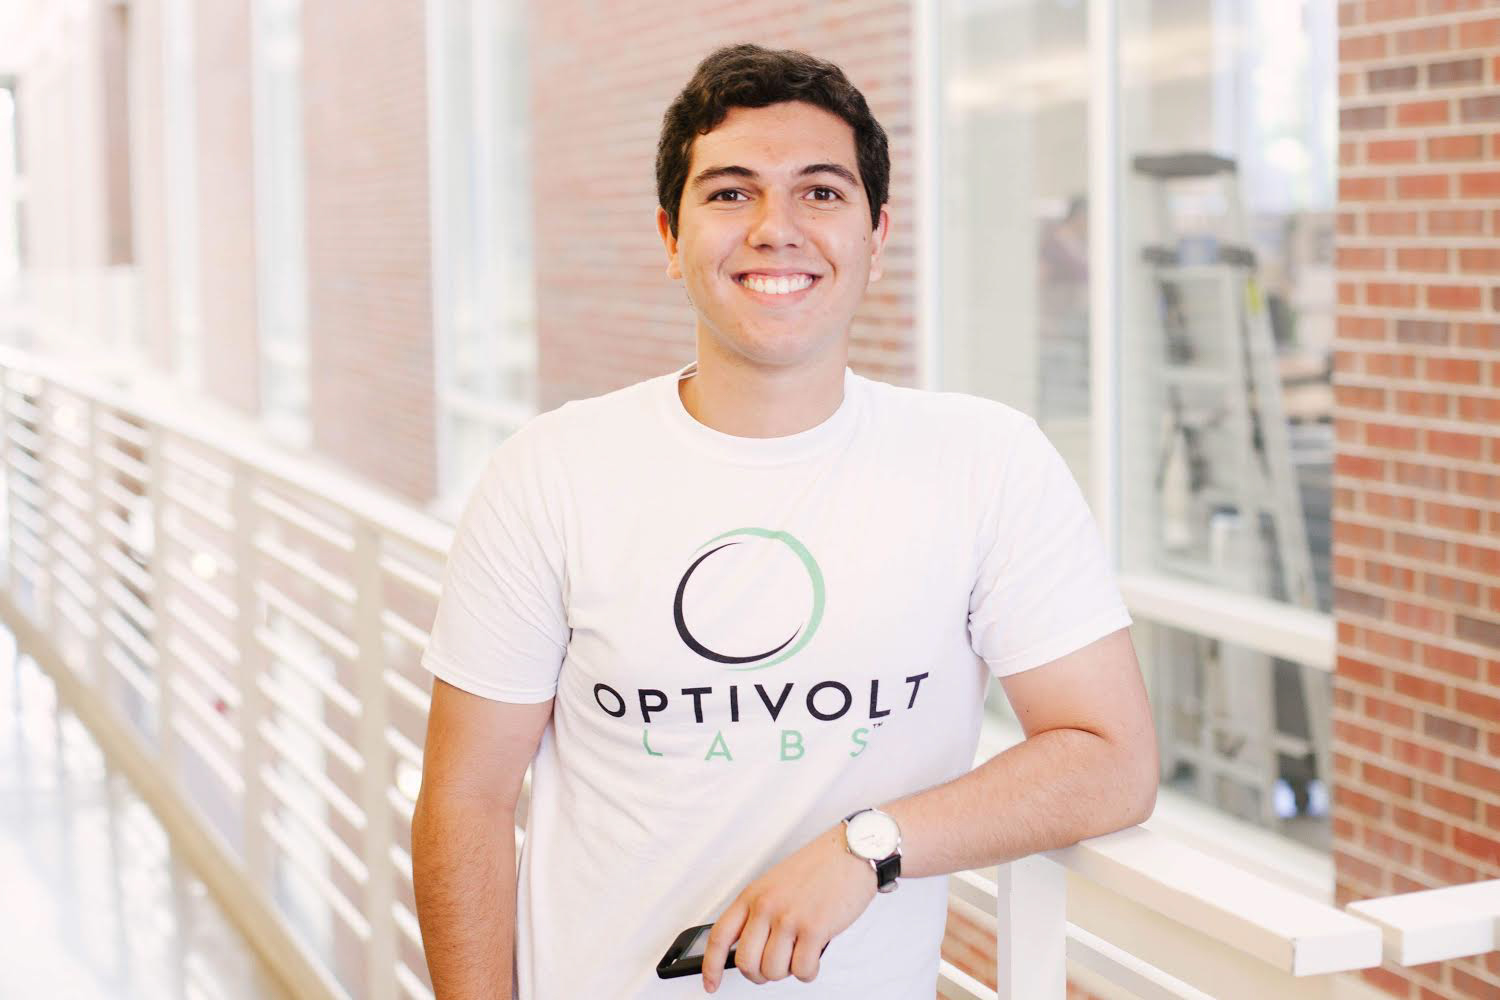 Paul Couston is a junior in Industrial Engineering. At the age of 20, he has built his own company that sells solar-powered iPhone cases with the help of his co-founder, Rohit Kalyanpur.